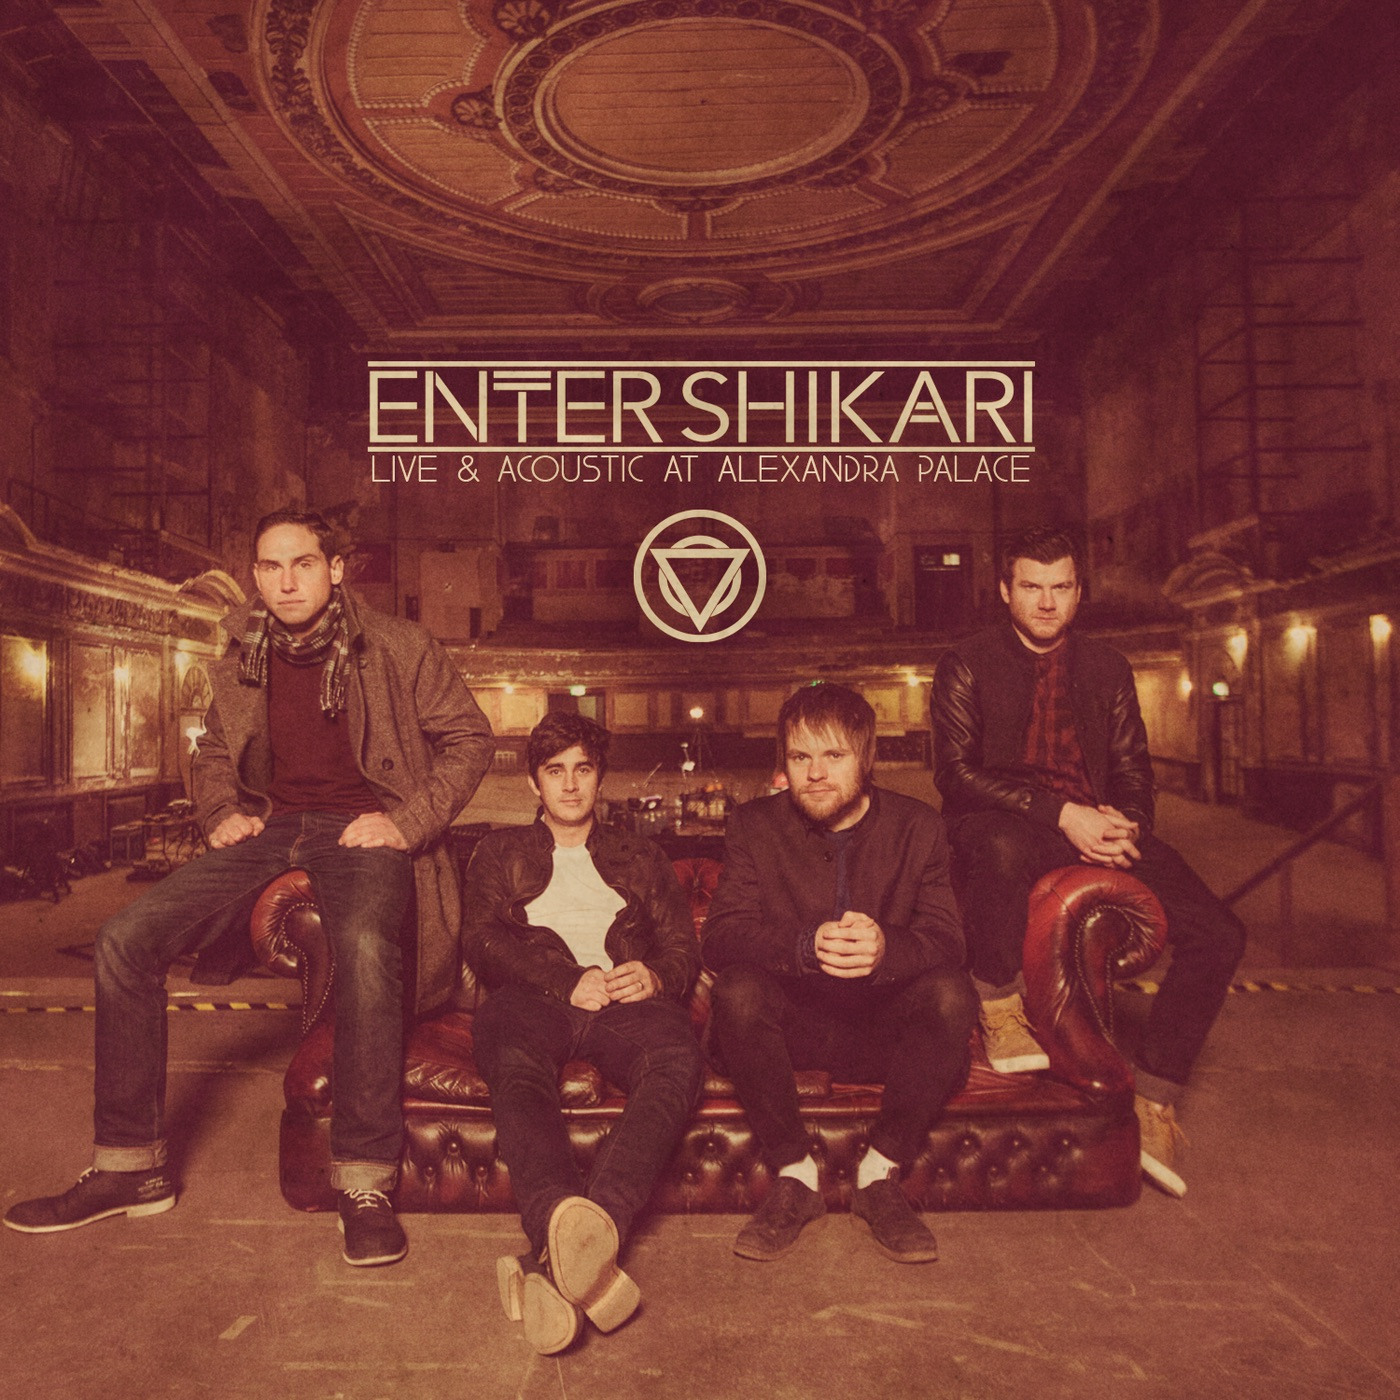 Enter Shikari - Live & Acoustic at Alexandra Palace [single] (2016)